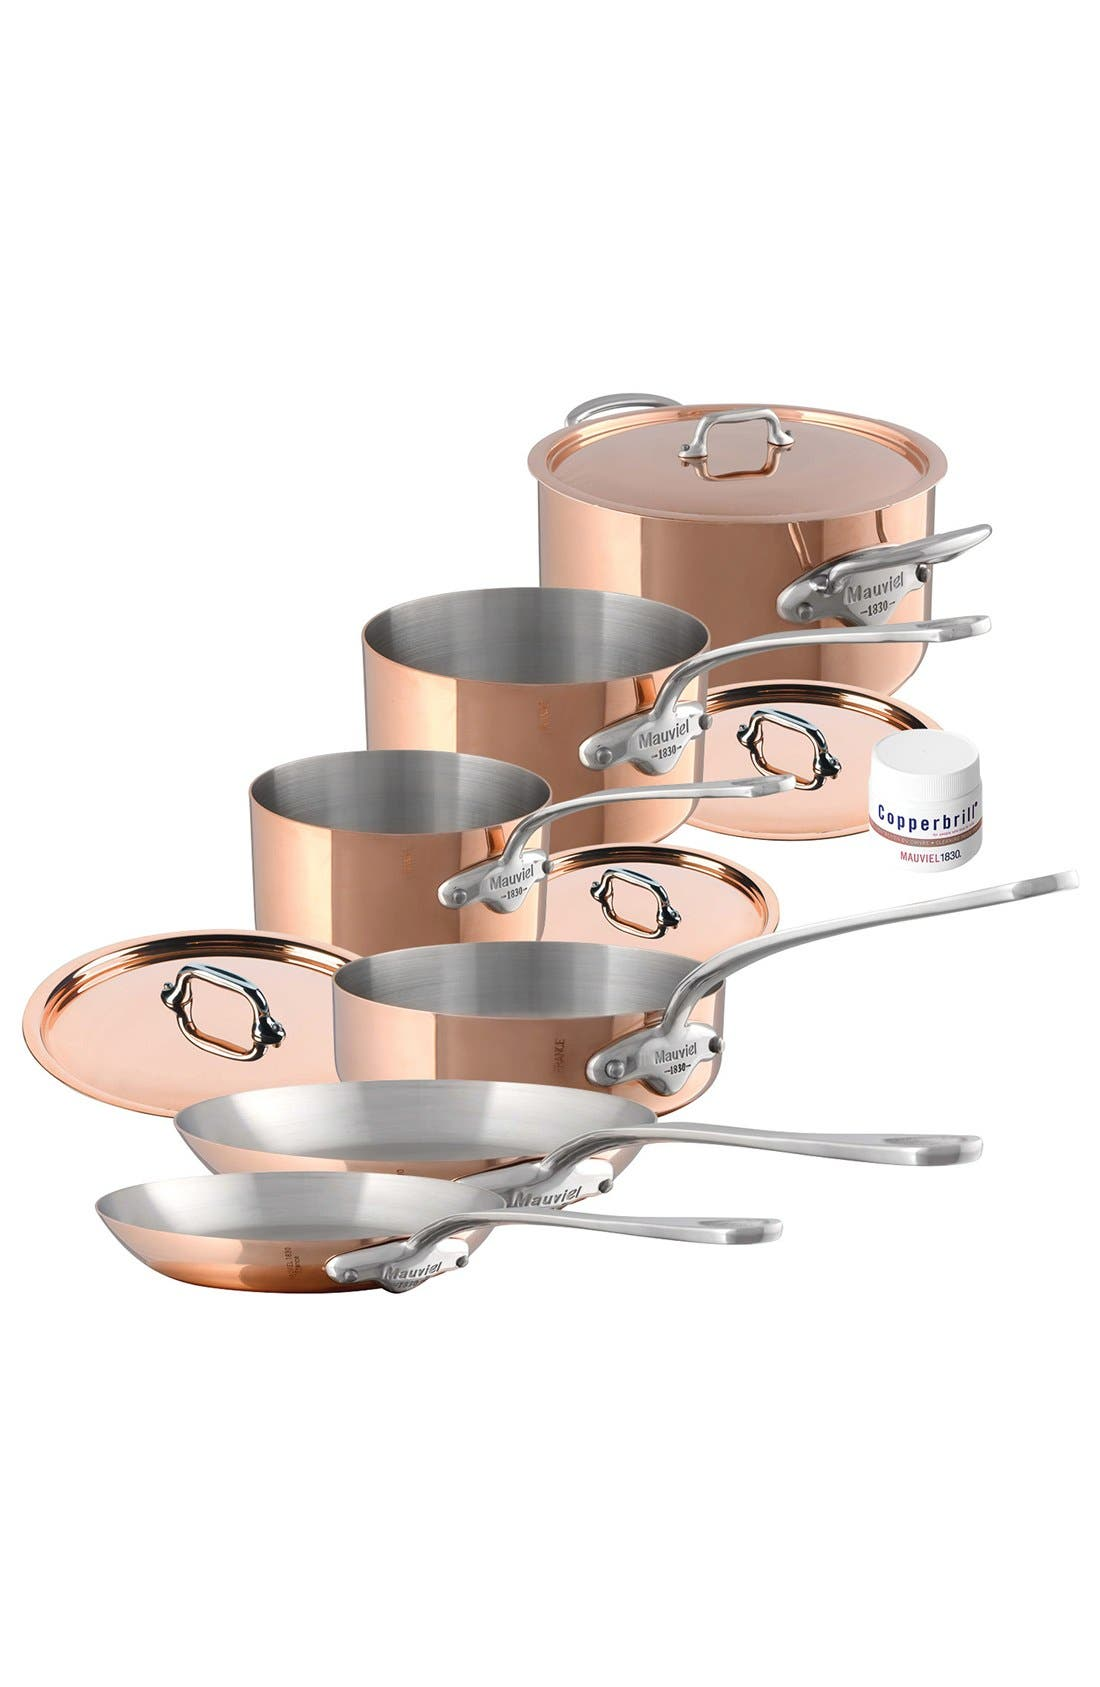 Mauviel M'héritage - M'150s 10-Piece Copper & Stainless Steel Cookware Set